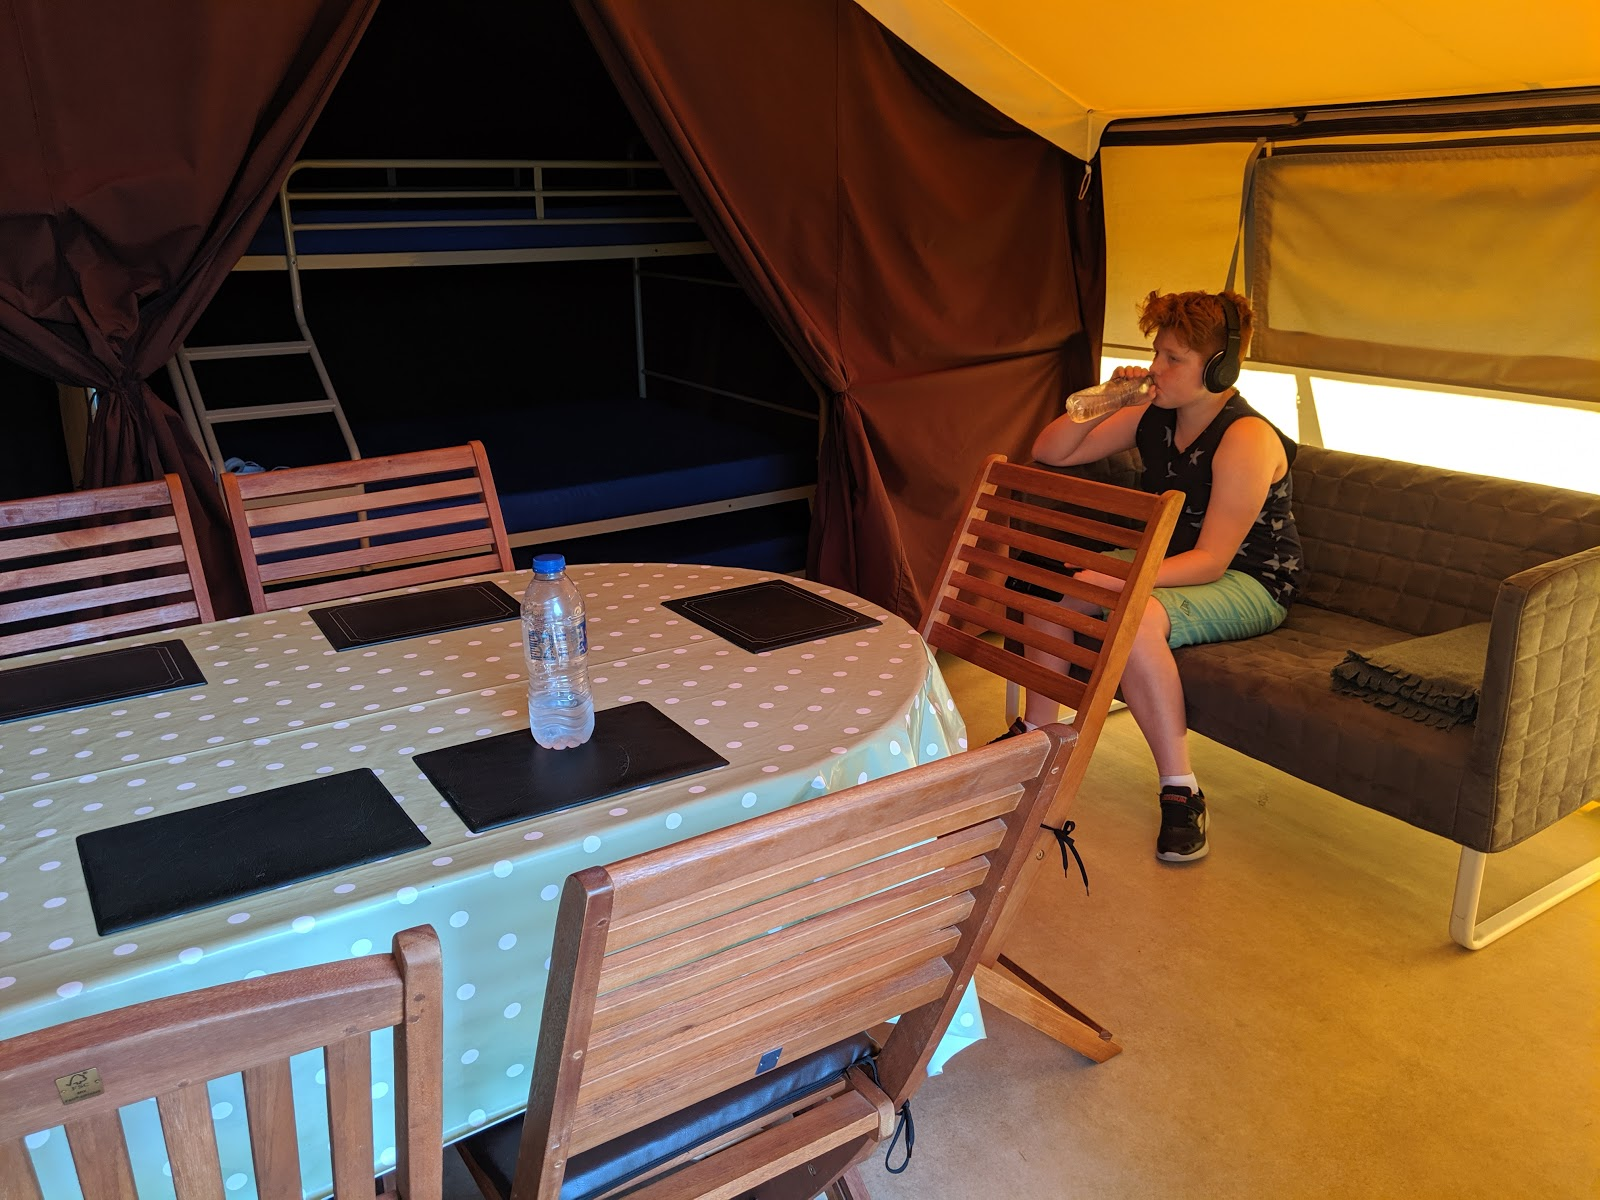 Ready Camp Horsley Review : Glamping near LEGOLAND and Chessington World of Adventures - dining area